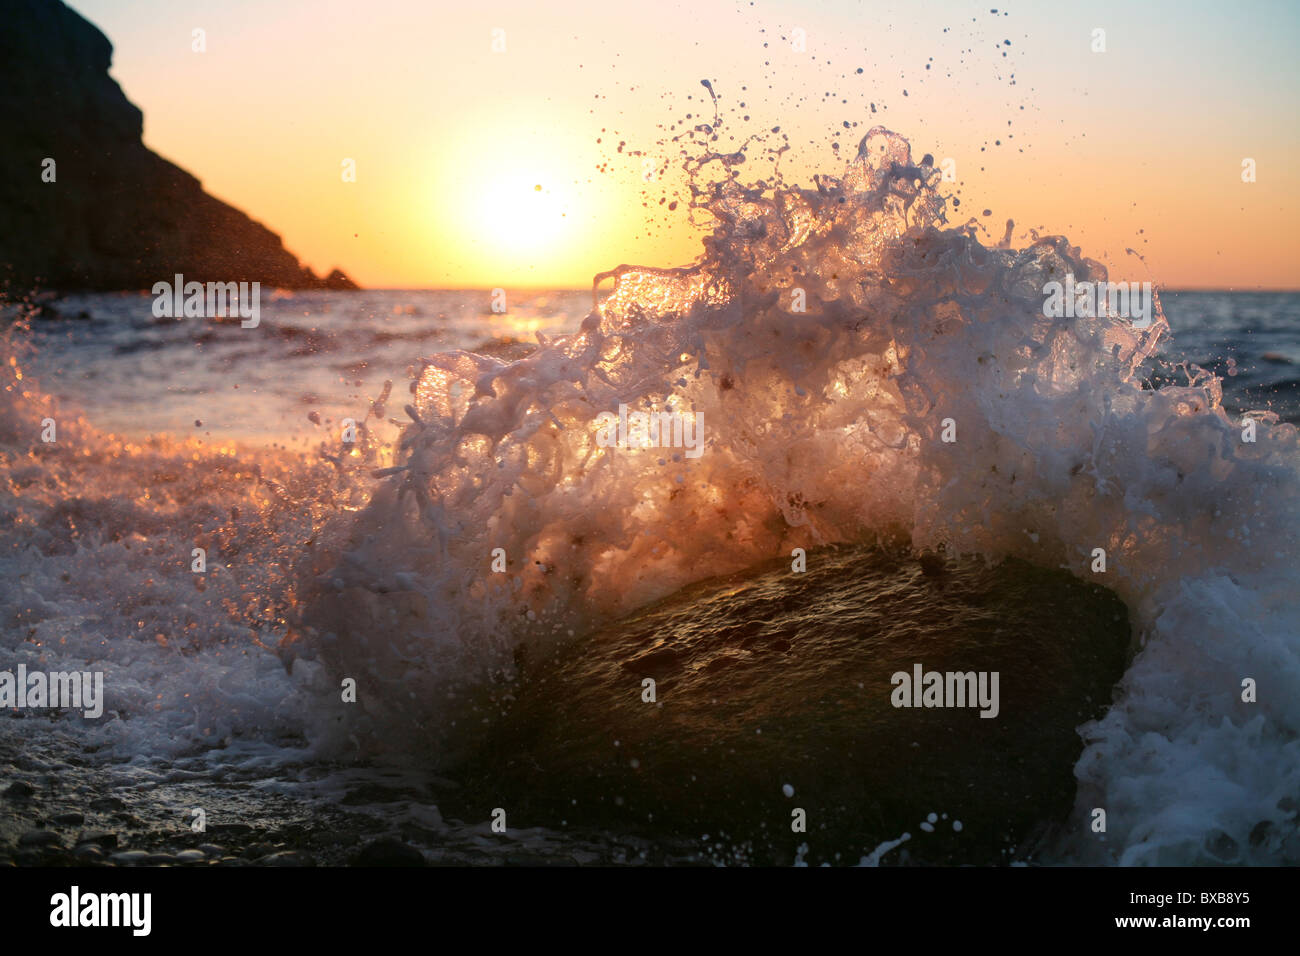 At sunrise, waves crash on the stone - Stock Image